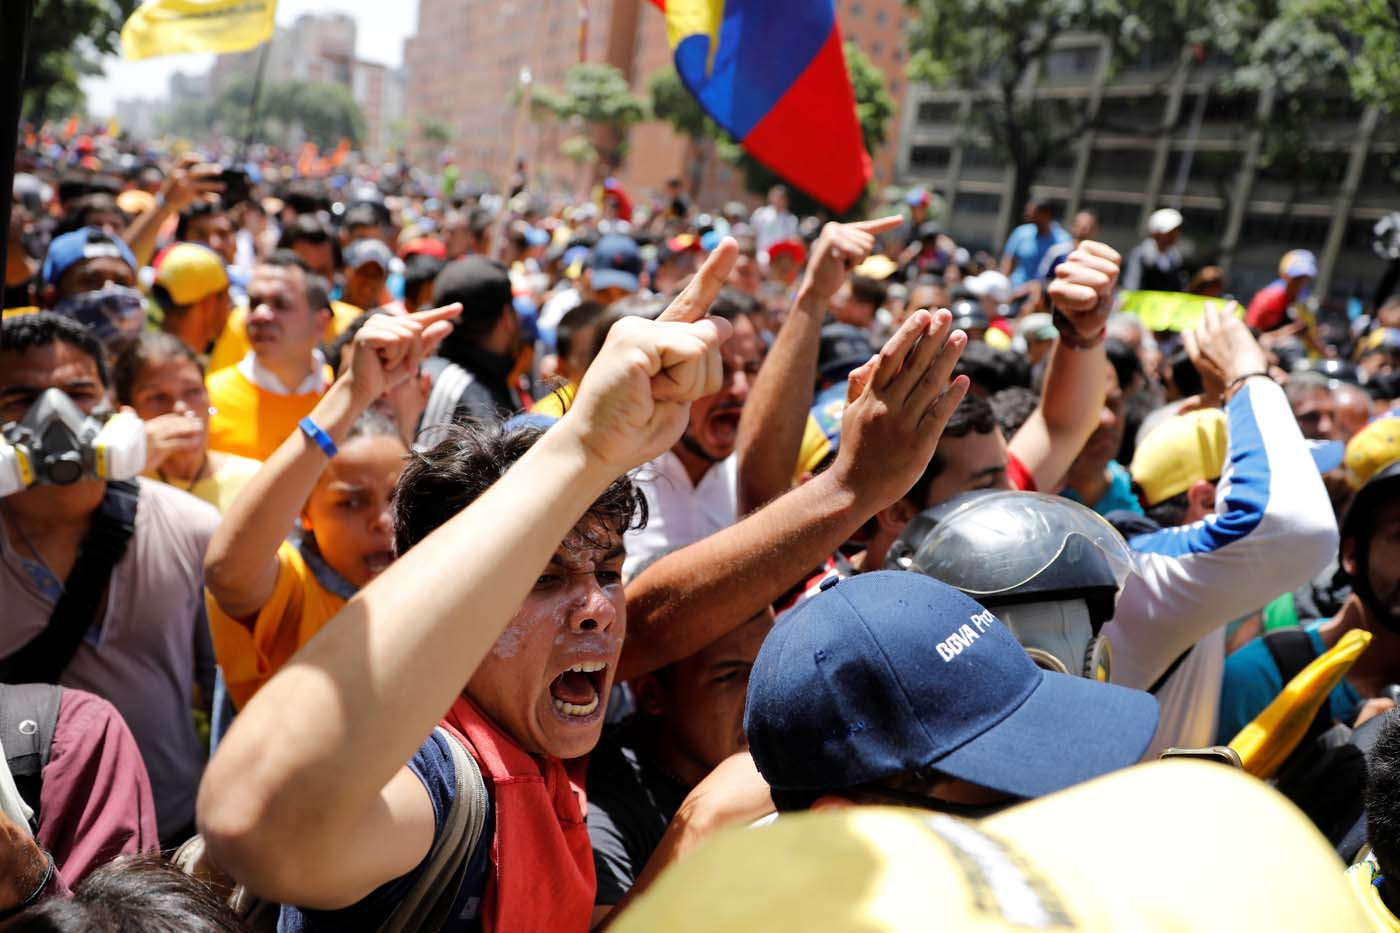 Demonstrators react during an opposition rally in Caracas, Venezuela April 4, 2017. REUTERS/Carlos Garcia Rawlins